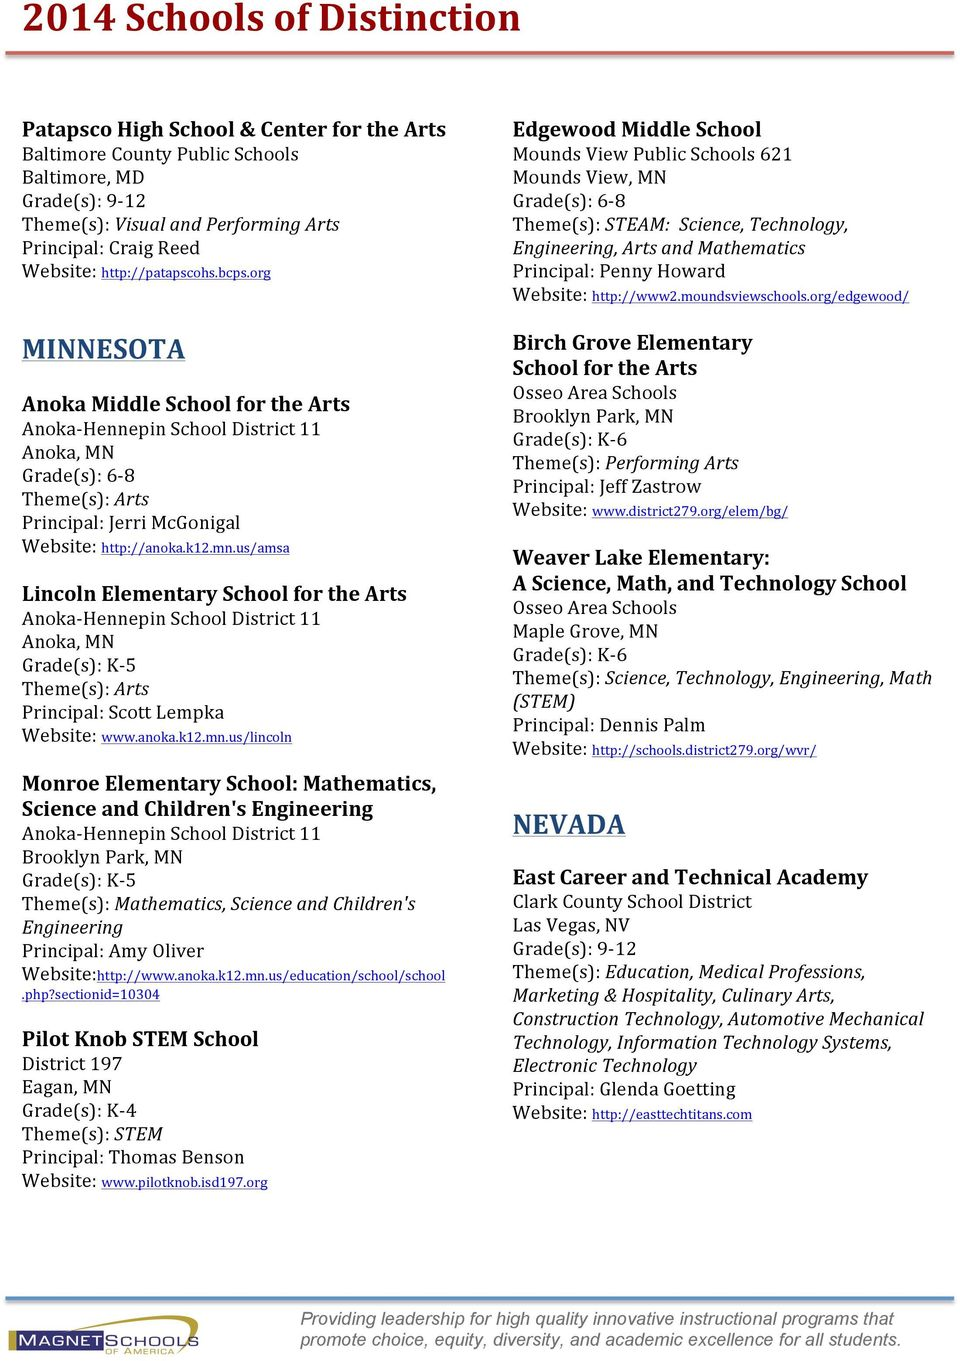 us/amsa Lincoln Elementary School for the Arts Anoka- Hennepin School District 11 Anoka, MN Grade(s): K- 5 Theme(s): Arts Principal: Scott Lempka Website: www.anoka.k12.mn.